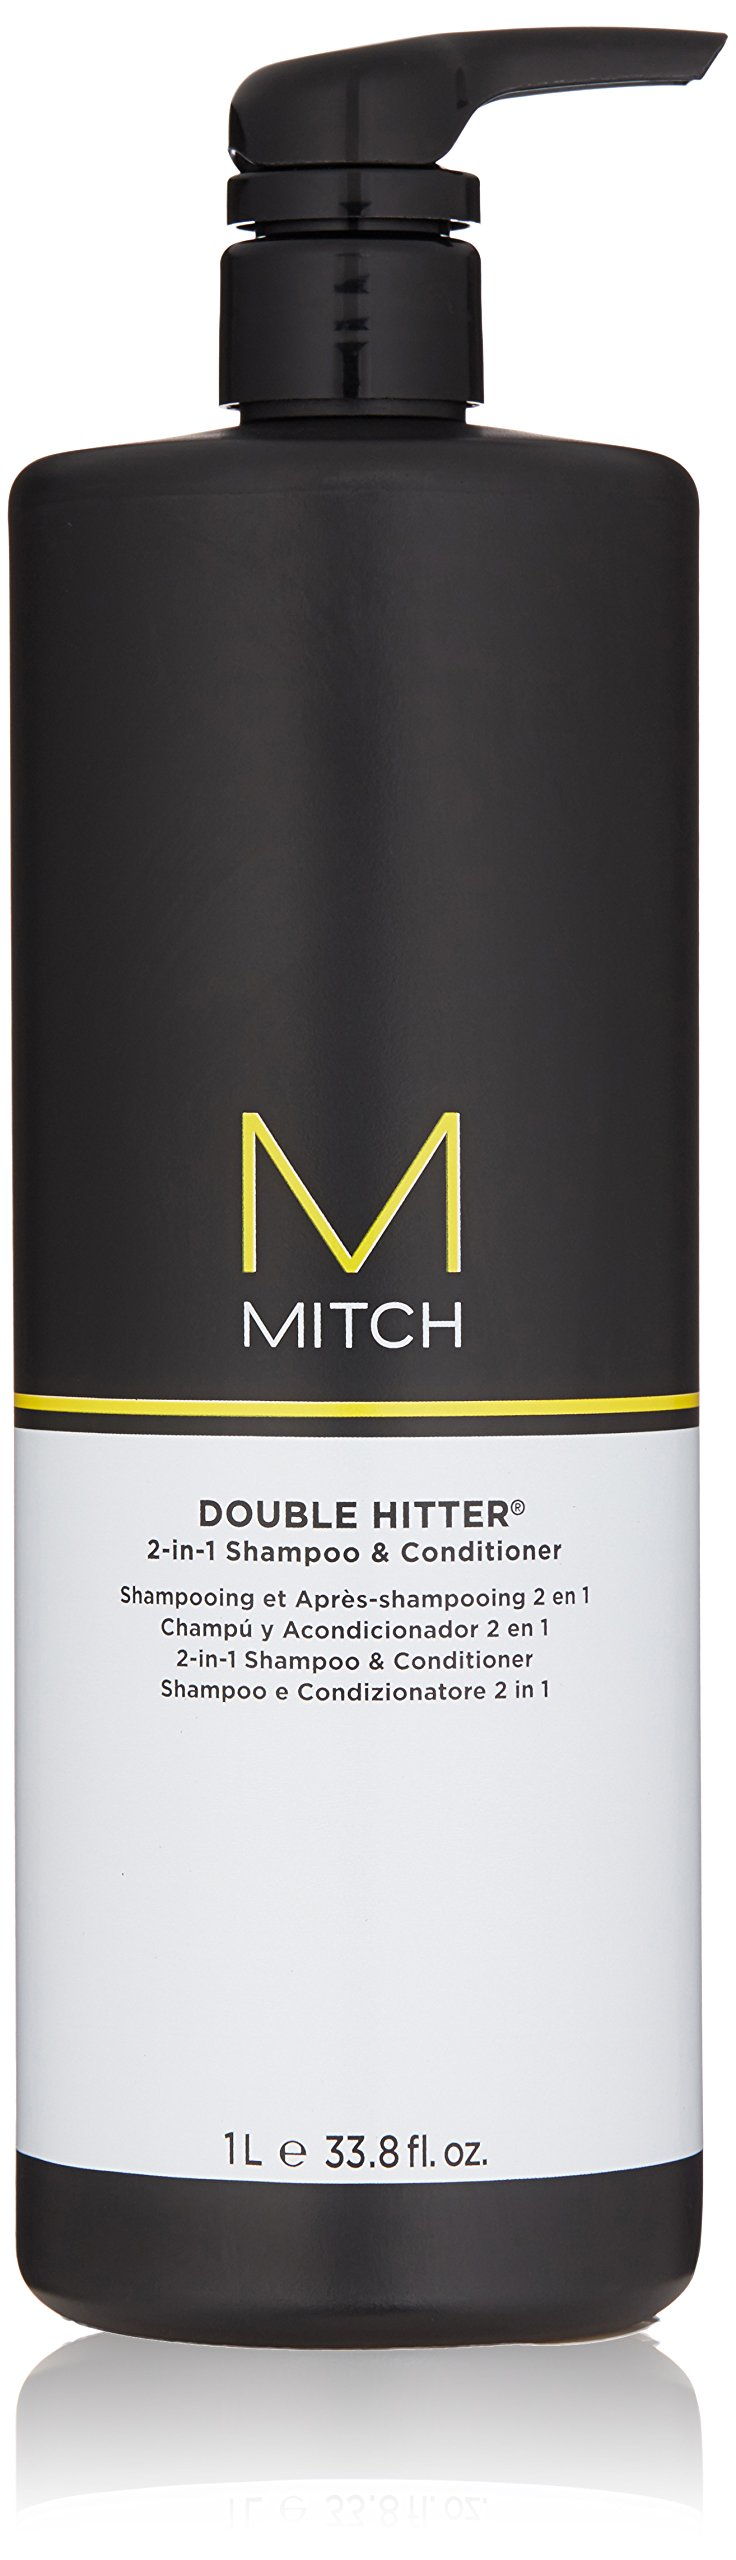 MITCH Double Hitter 2-in-1 Shampoo and Conditioner by Mitch (Image #1)